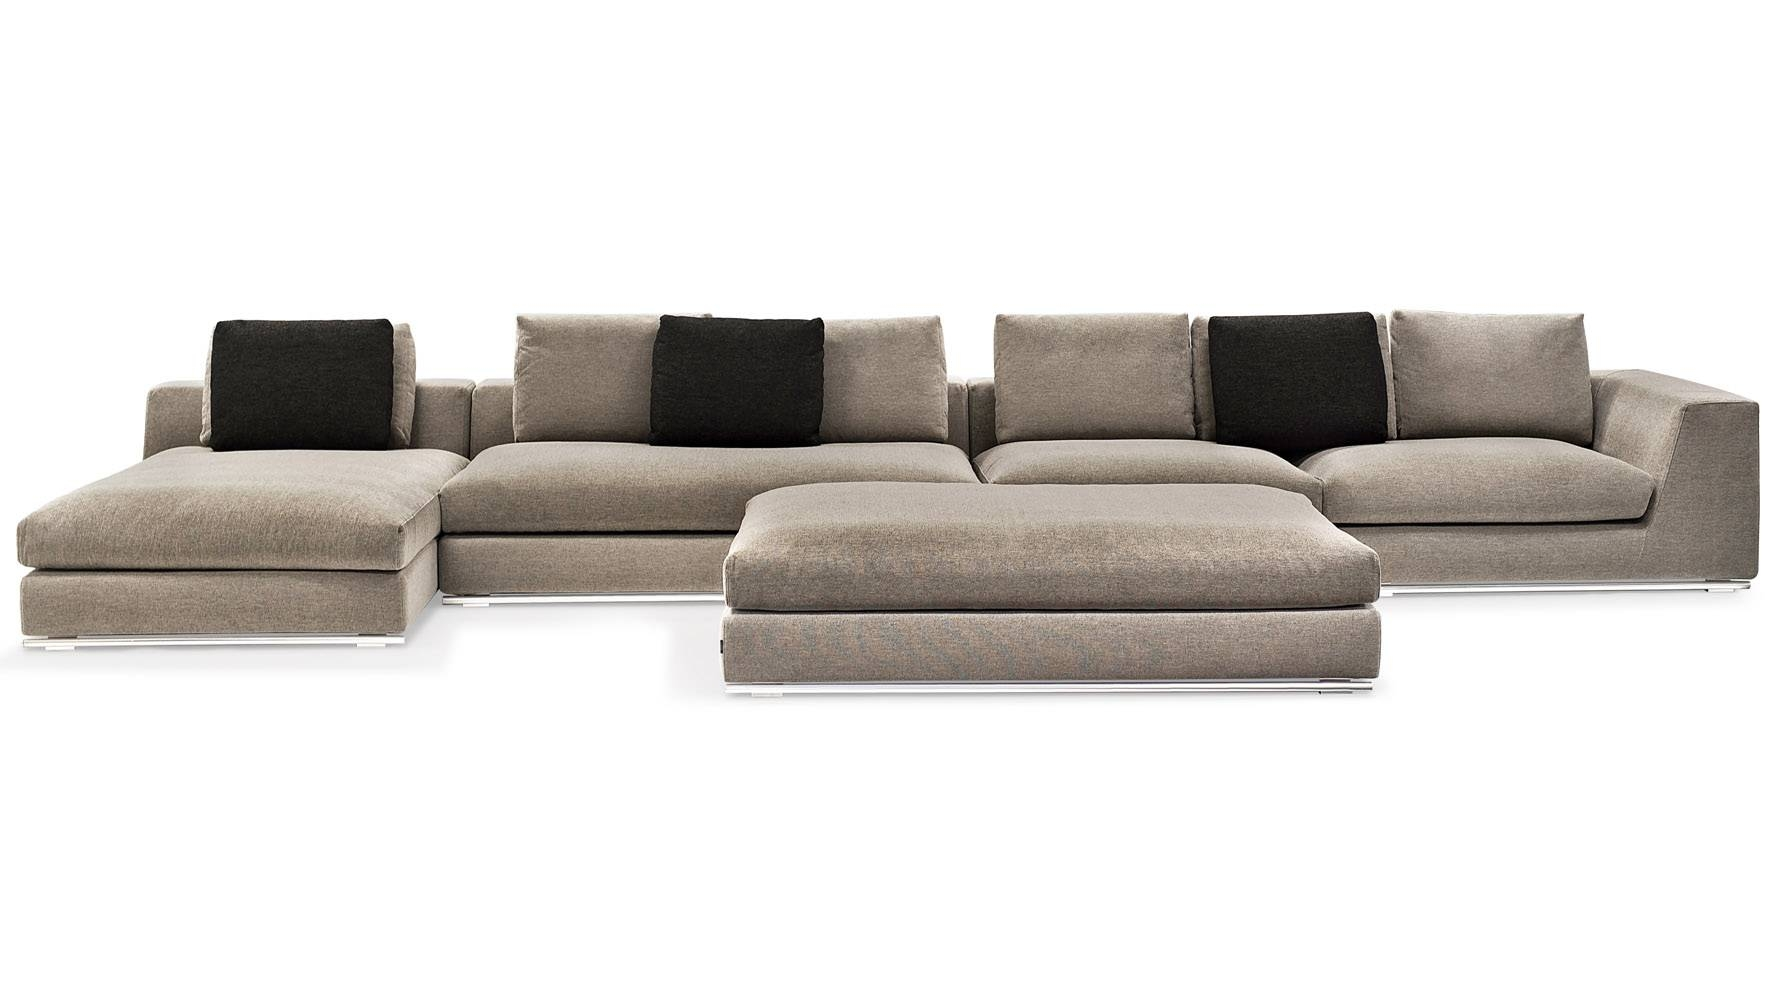 Comodo Sectional Sofa With Ottoman   Grey | Zuri Furniture Pertaining To Armless Sectional Sofas (Photo 13 of 30)